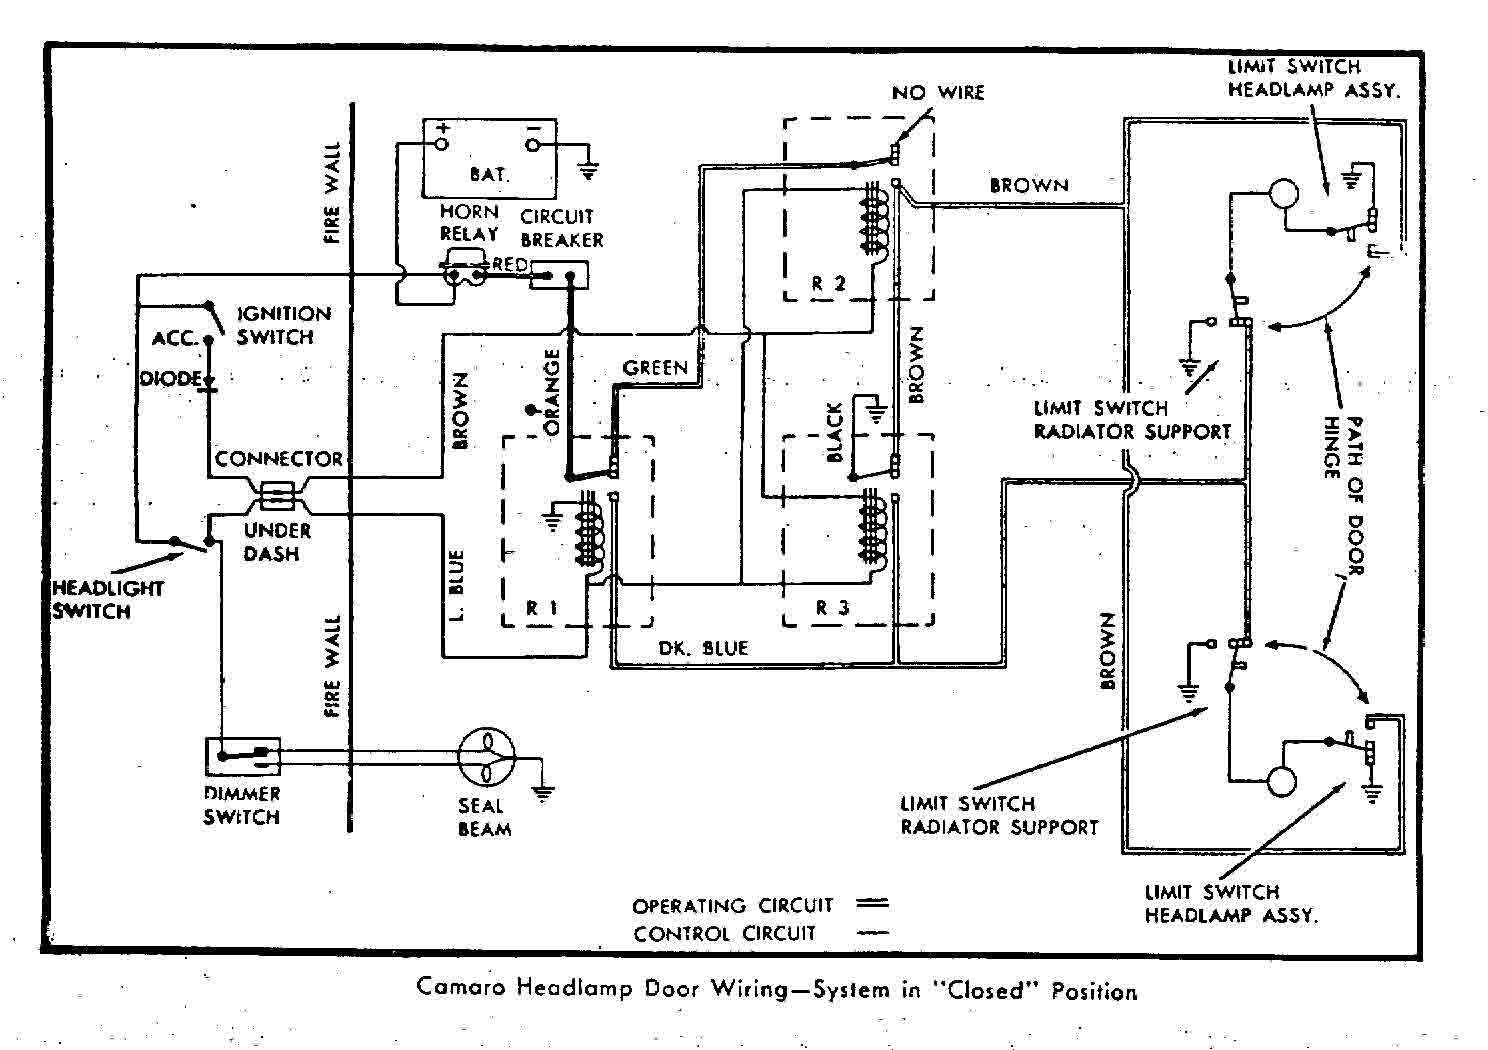 1968 Chevrolet Camaro Turn Signal Wiring Diagram 64 Mustang 67 Todays1967 Headlight Switch Free Picture